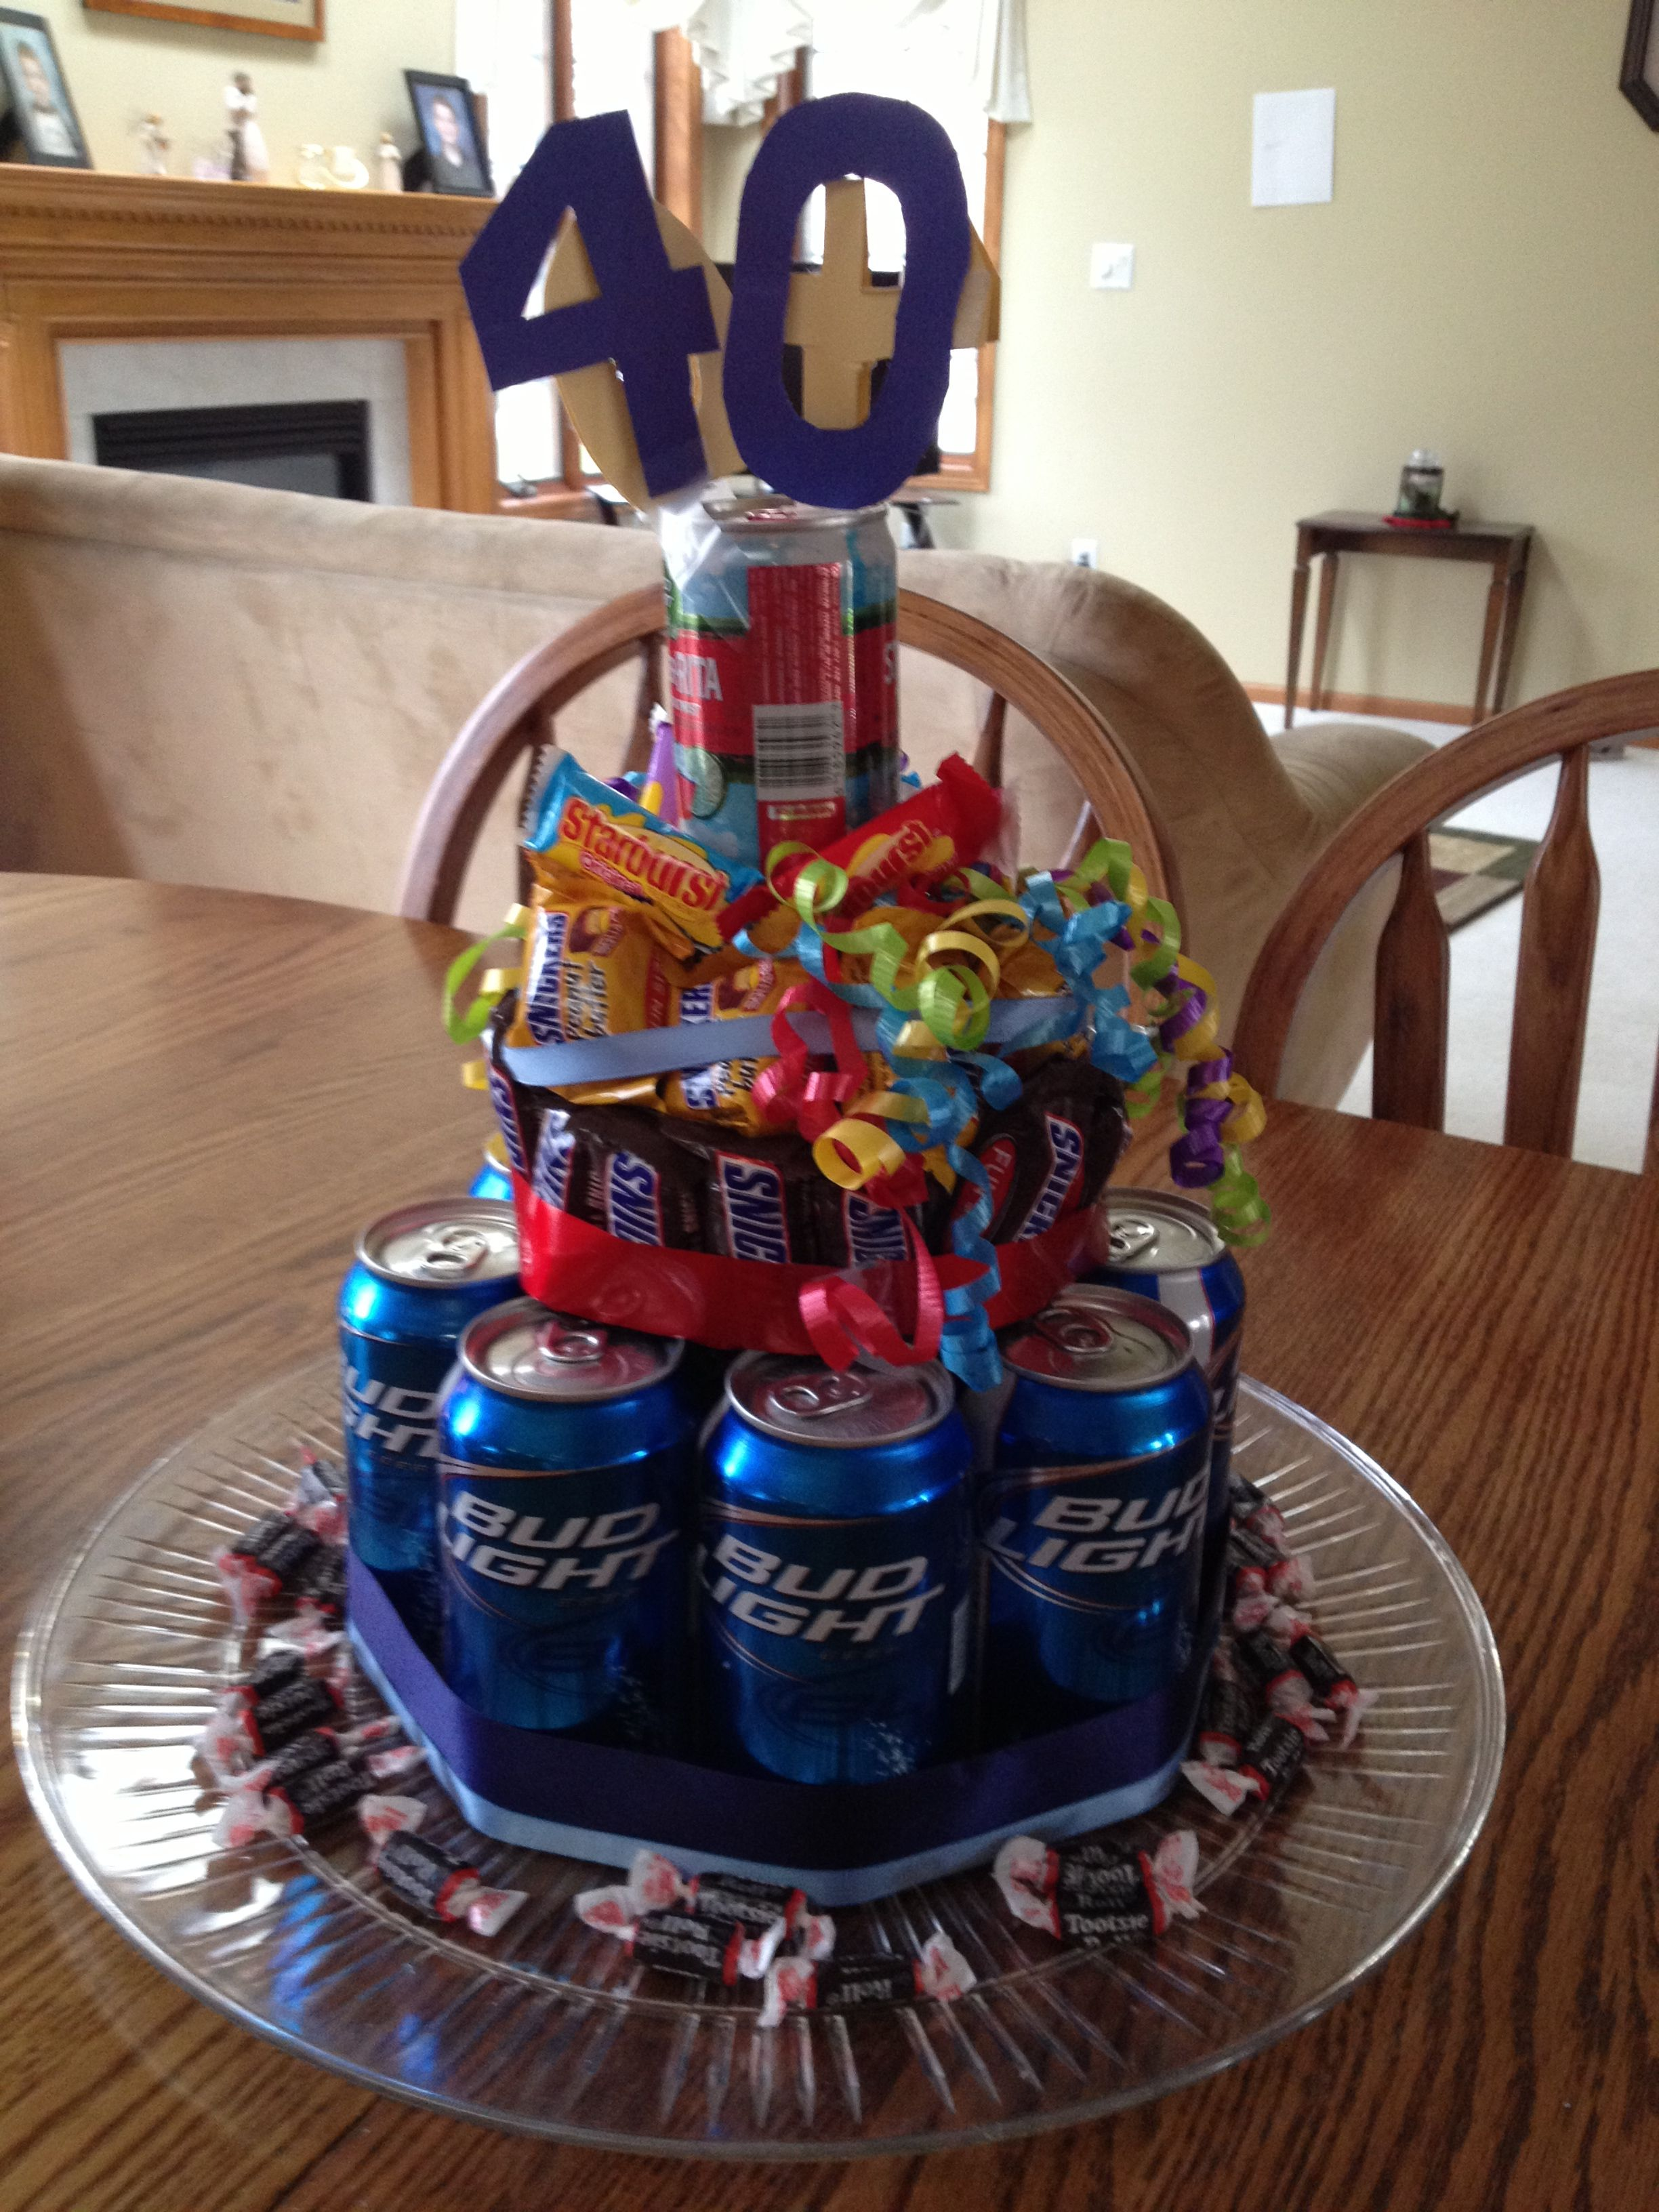 Miller Lite Cake Decorations